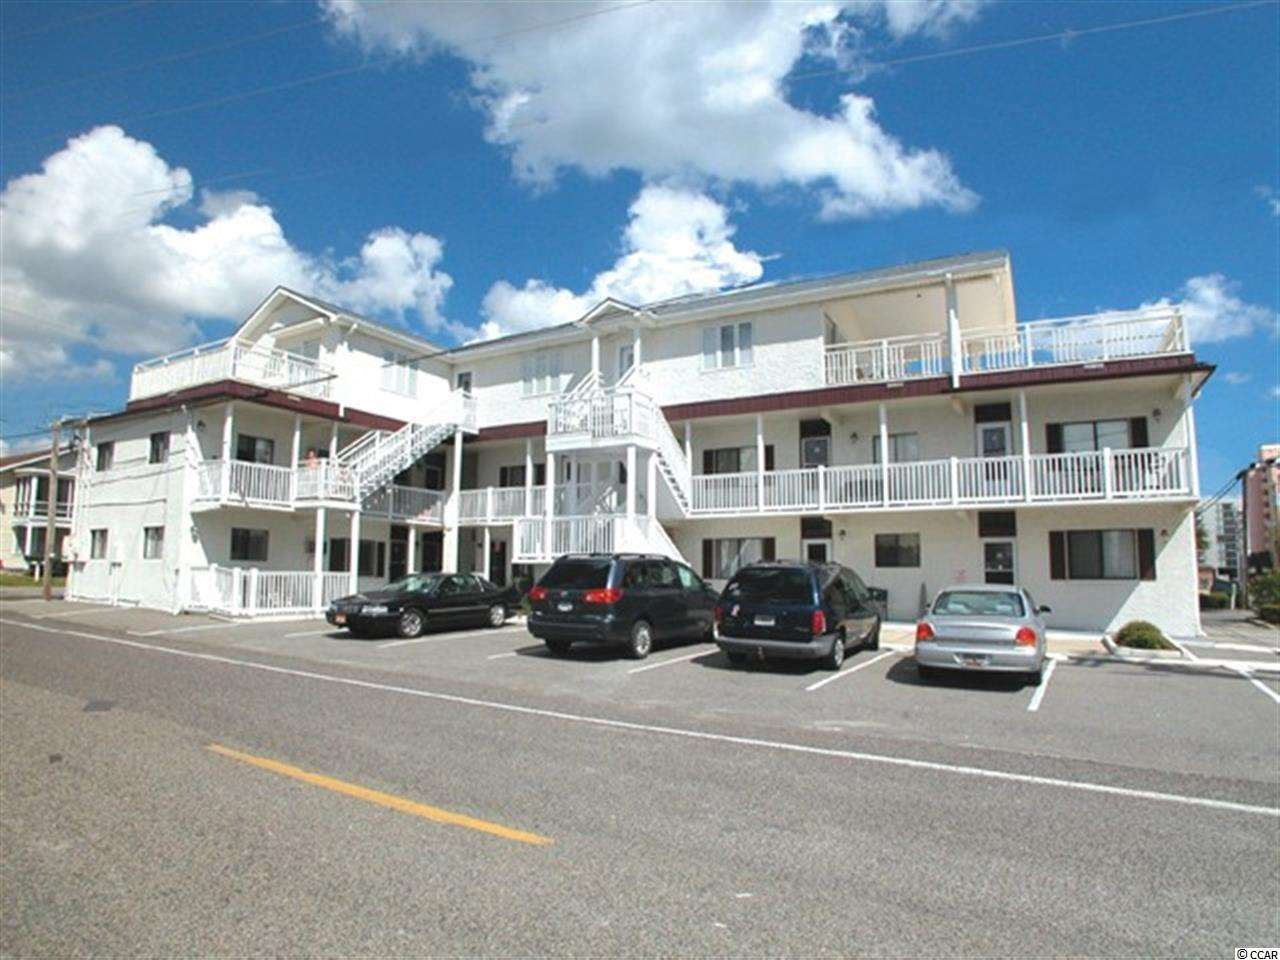 Ocean view furnished two bedroom condo deal in Crescent Beach. Low HOA fees. Washer & Dryer onsite. Great Crescent Beach location with quick access to Barefoot Landing and all Myrtle Beach attractions, world-class golf, outlet shopping, incredible restaurants and top-notch entertainment.  Public beach access across the street and walking distance to Molly Darcy's restaurant. Owner allowed pets. Perfect vacation retreat.  Square footage is appr...